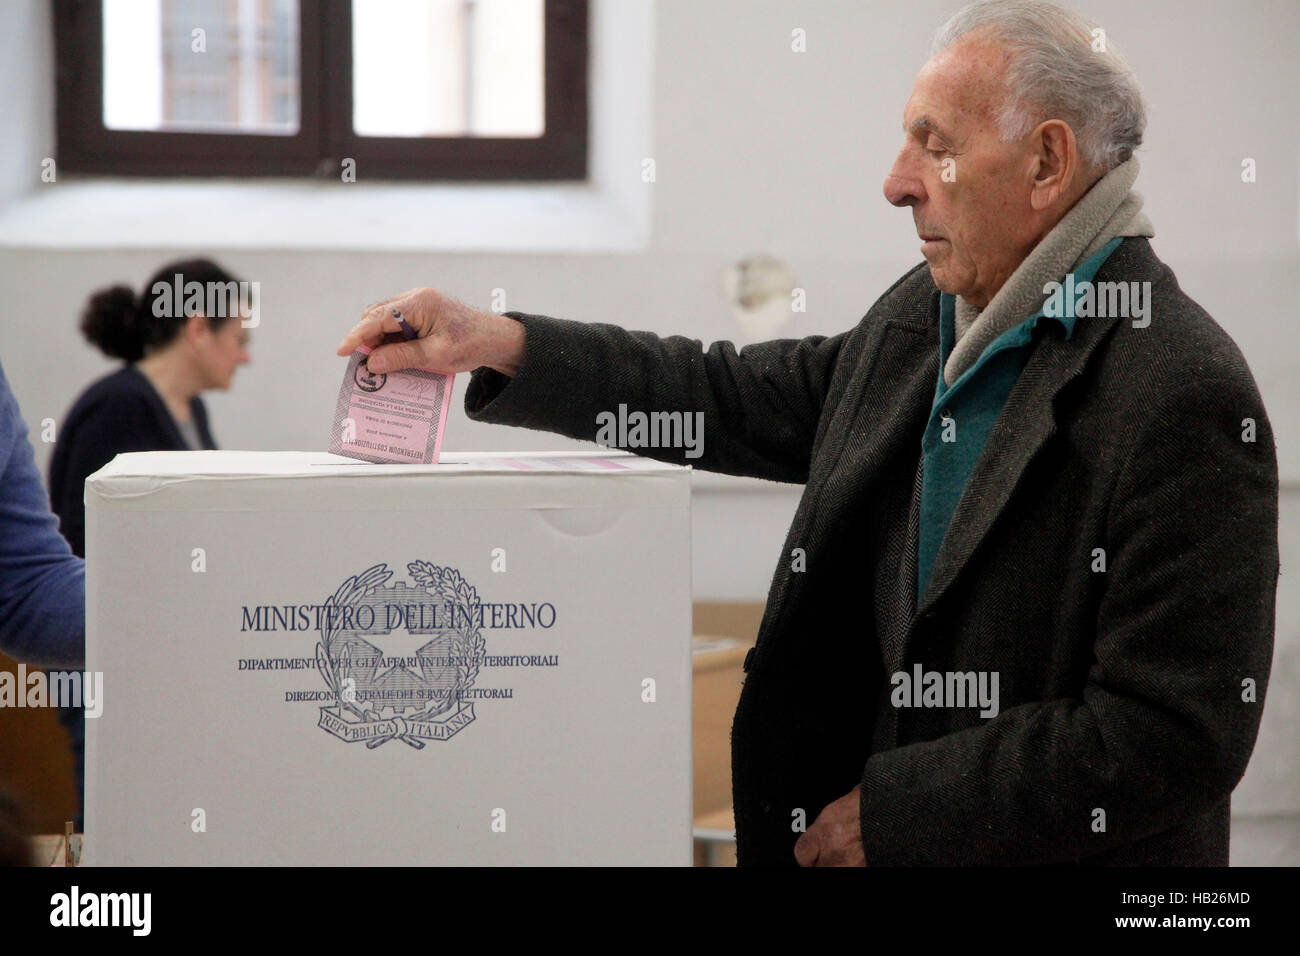 A voter votes at the polling station as others wait to enter during the referendum on constitutional reform - Stock Image